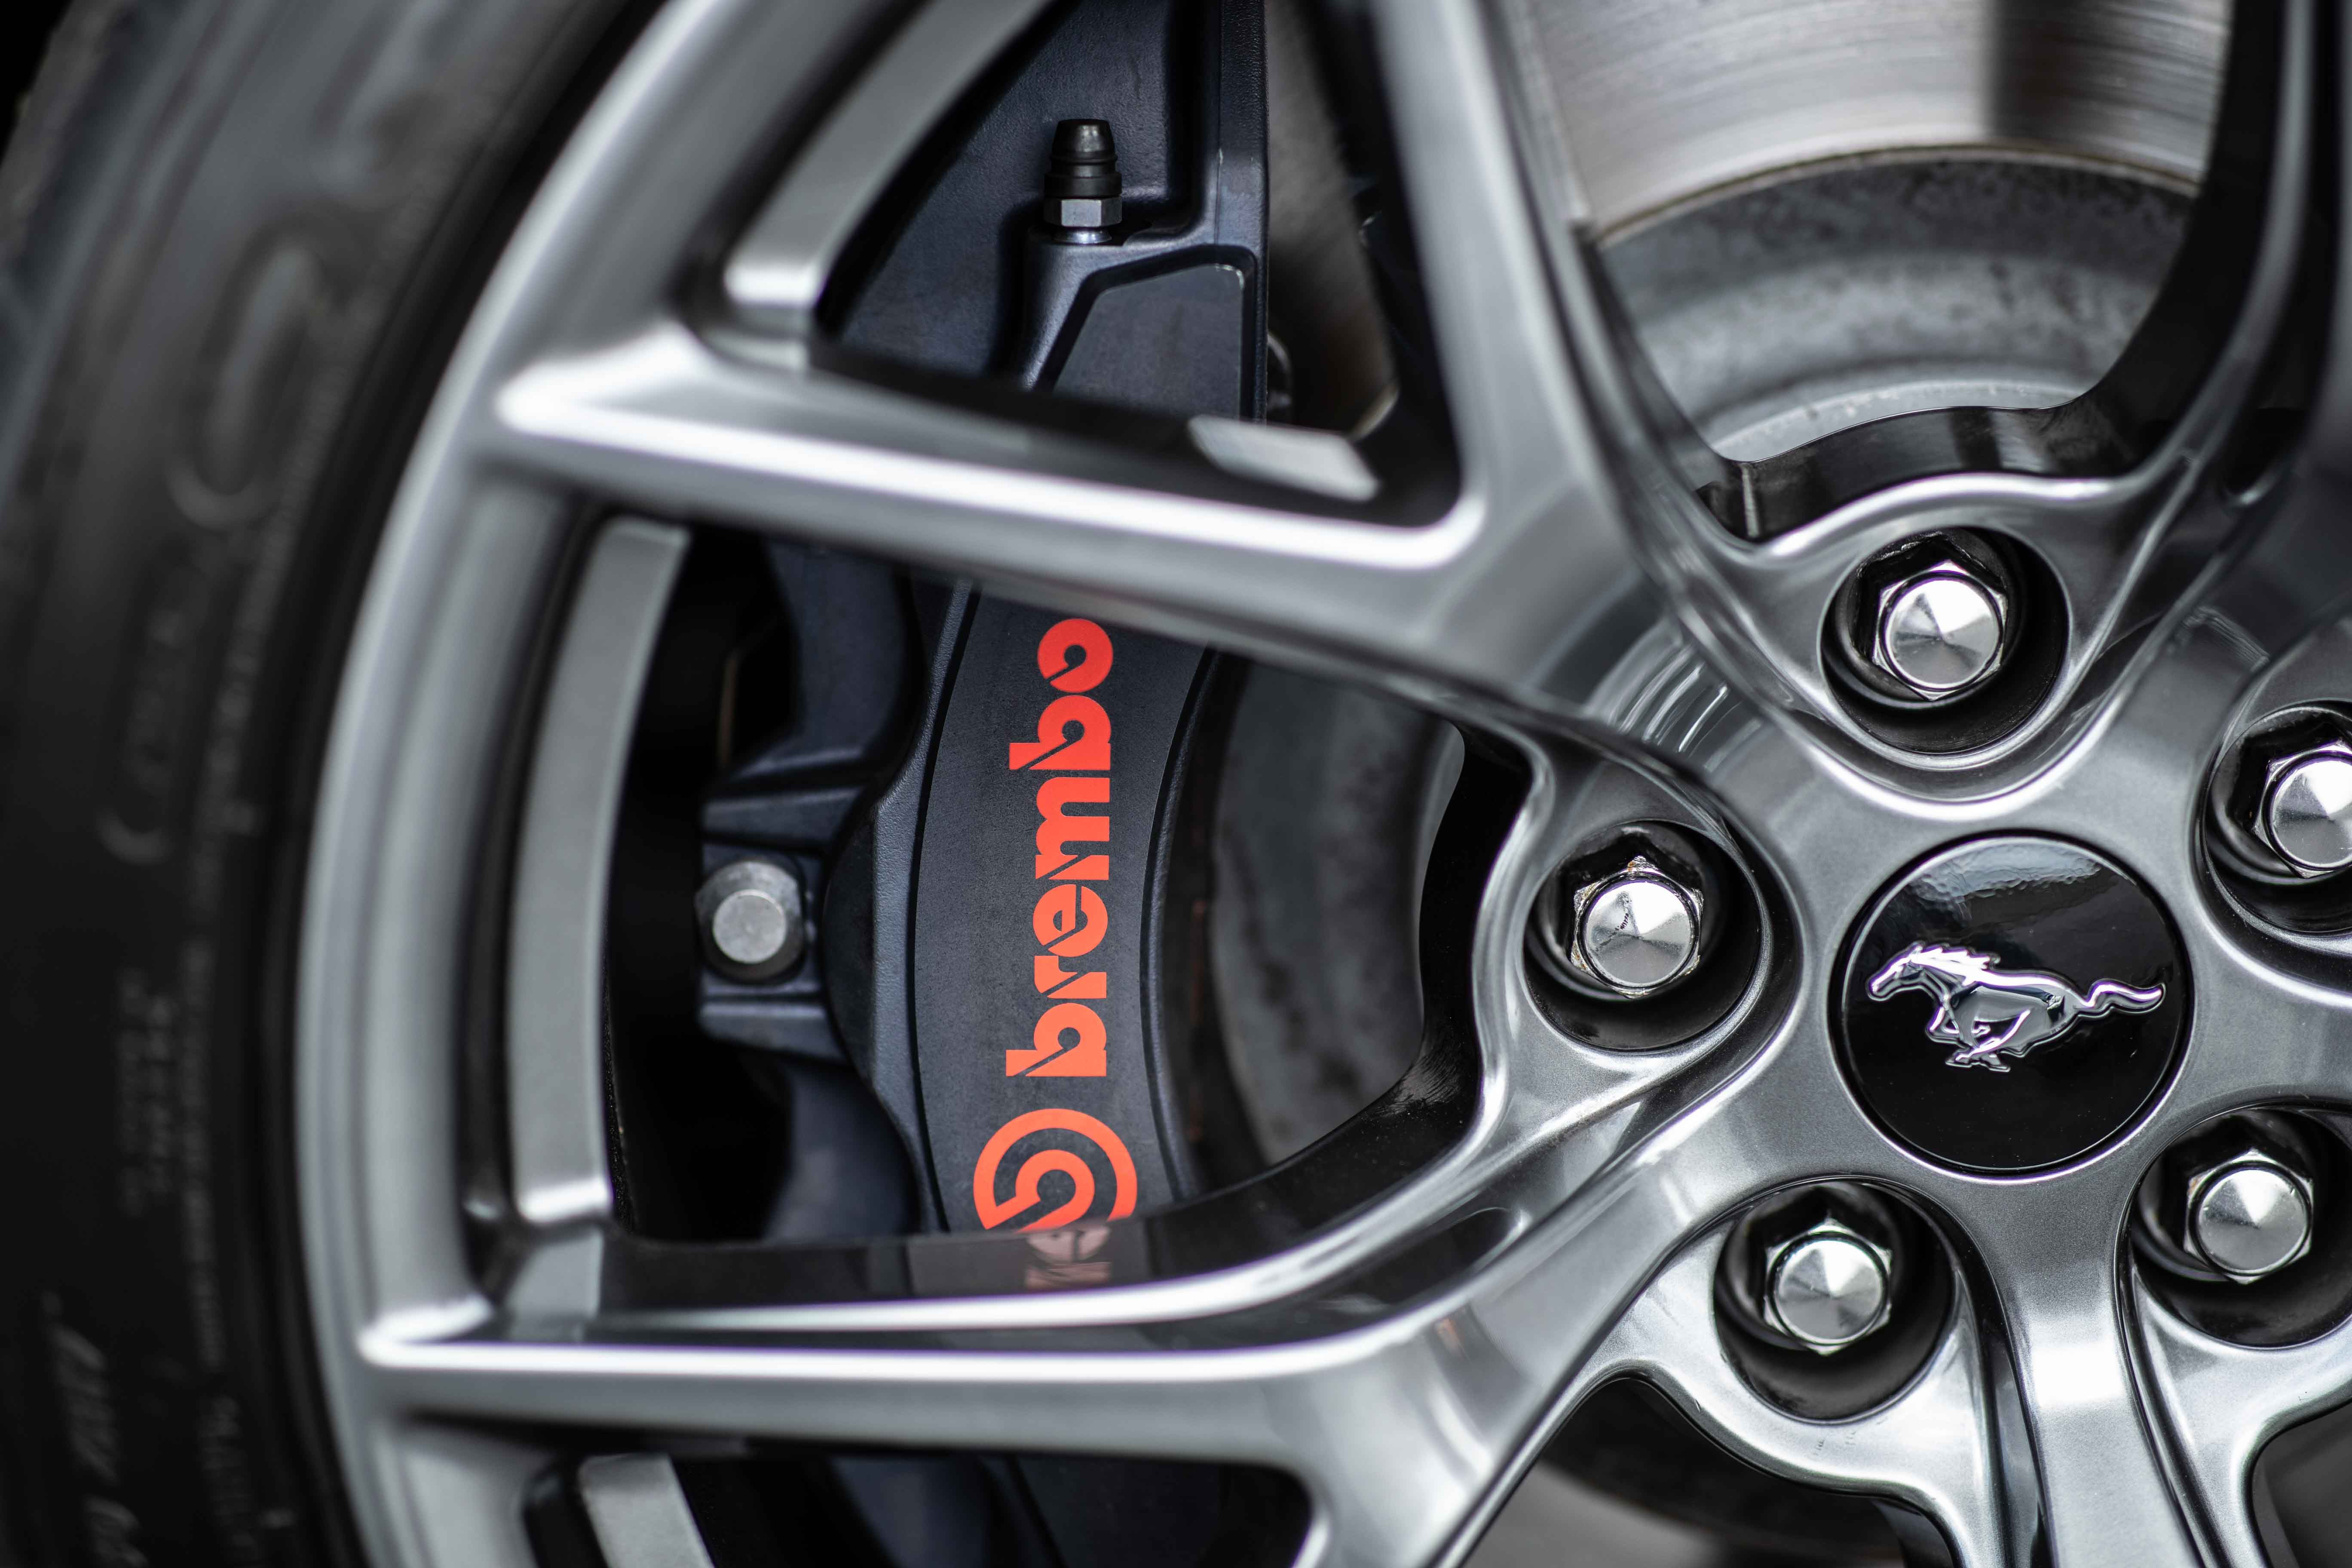 2018 Ford Mustang GT Performance Pack 2 Brembo Brakes